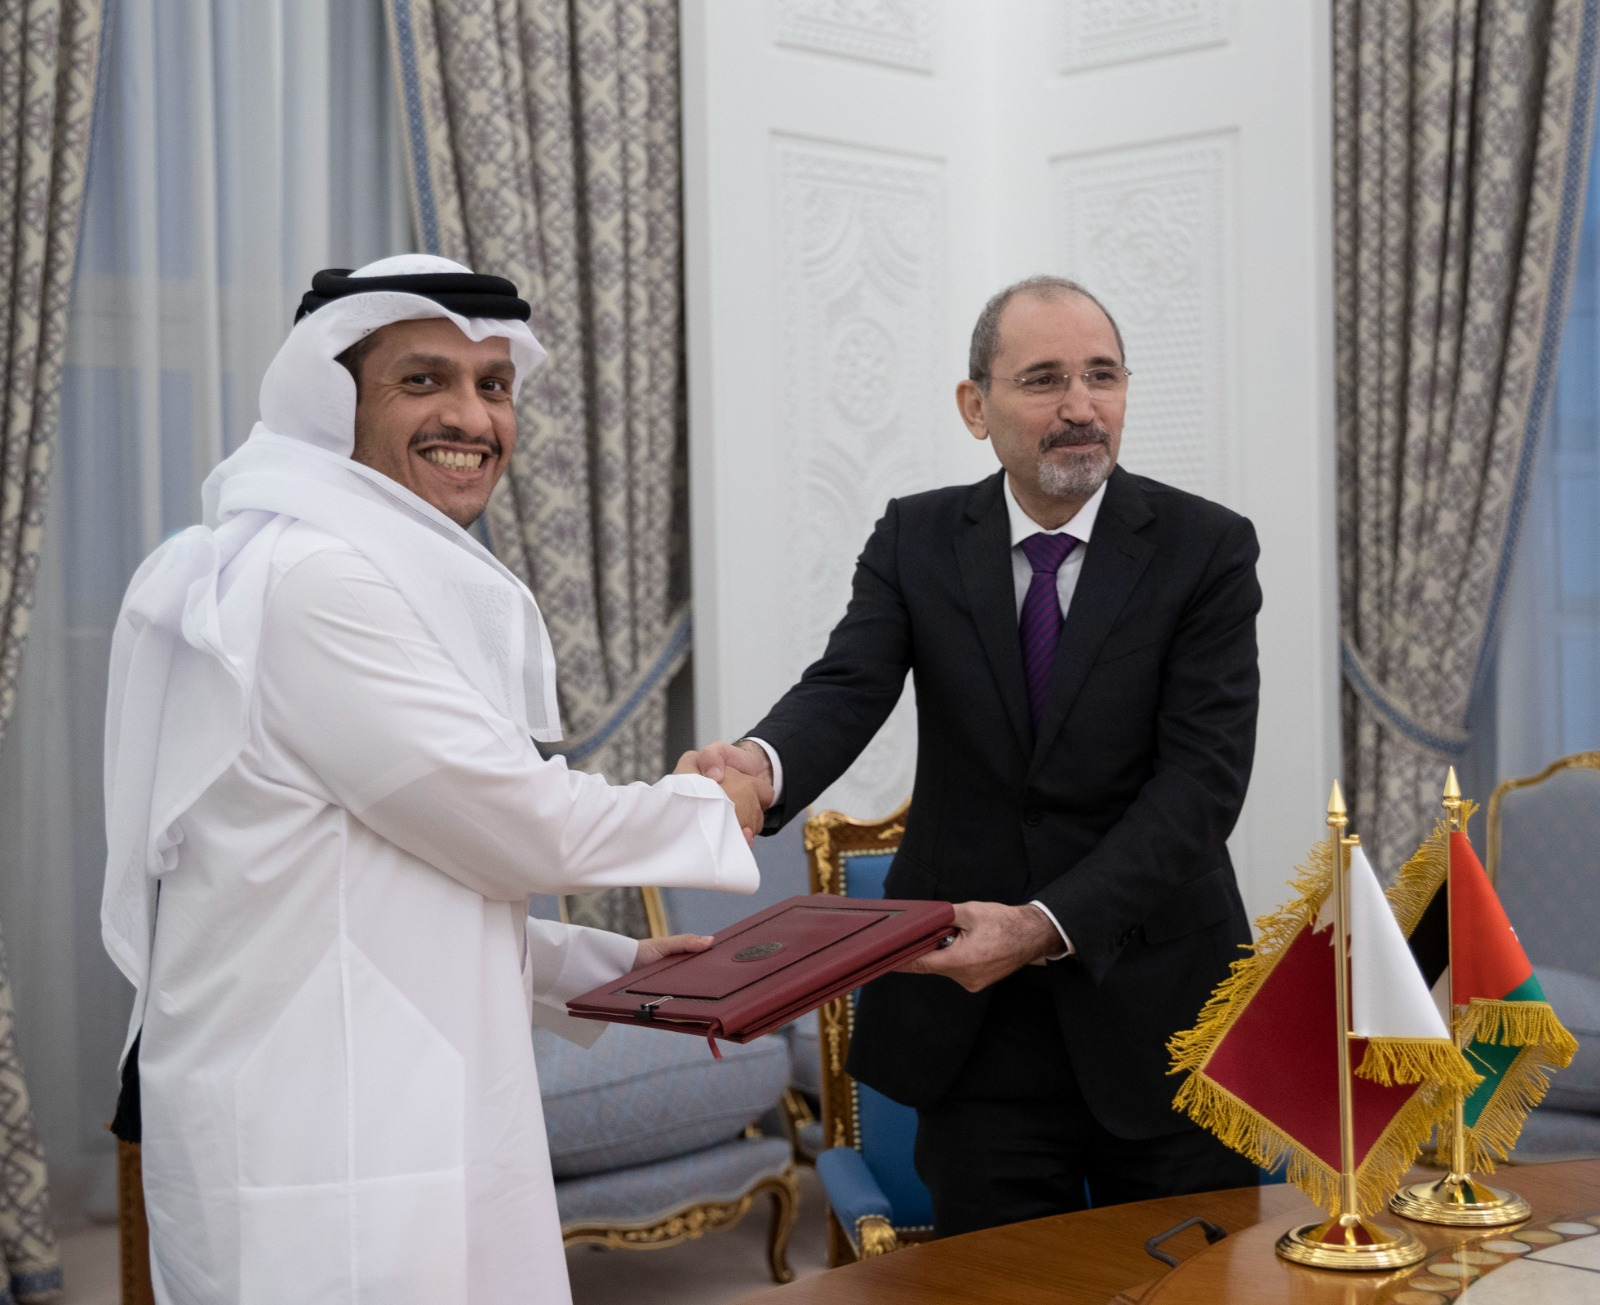 Deputy Prime Minister and Minister of Foreign Affairs, Jordanian Counterpart Sign Agreement and MoU